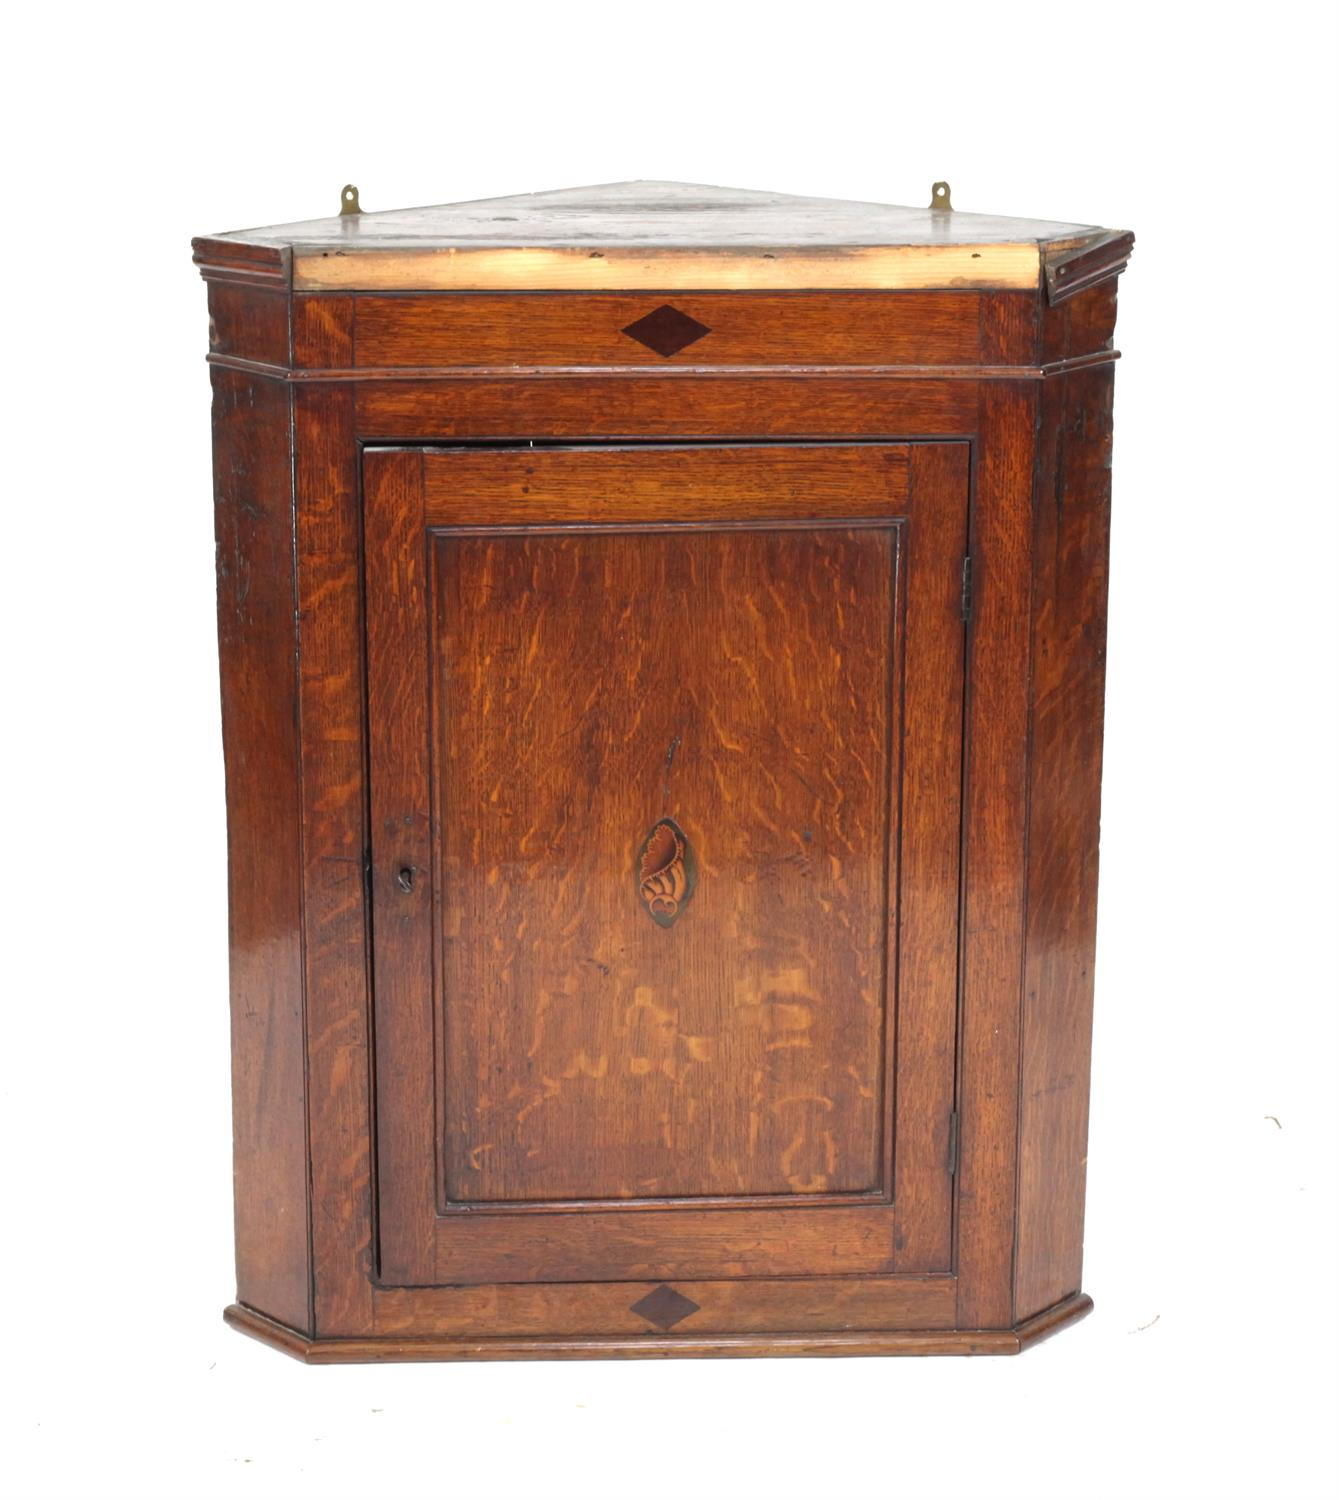 19th century oak wall hanging oak corner cabinet, with marquetry inlaid shell patera, H93 x W73.